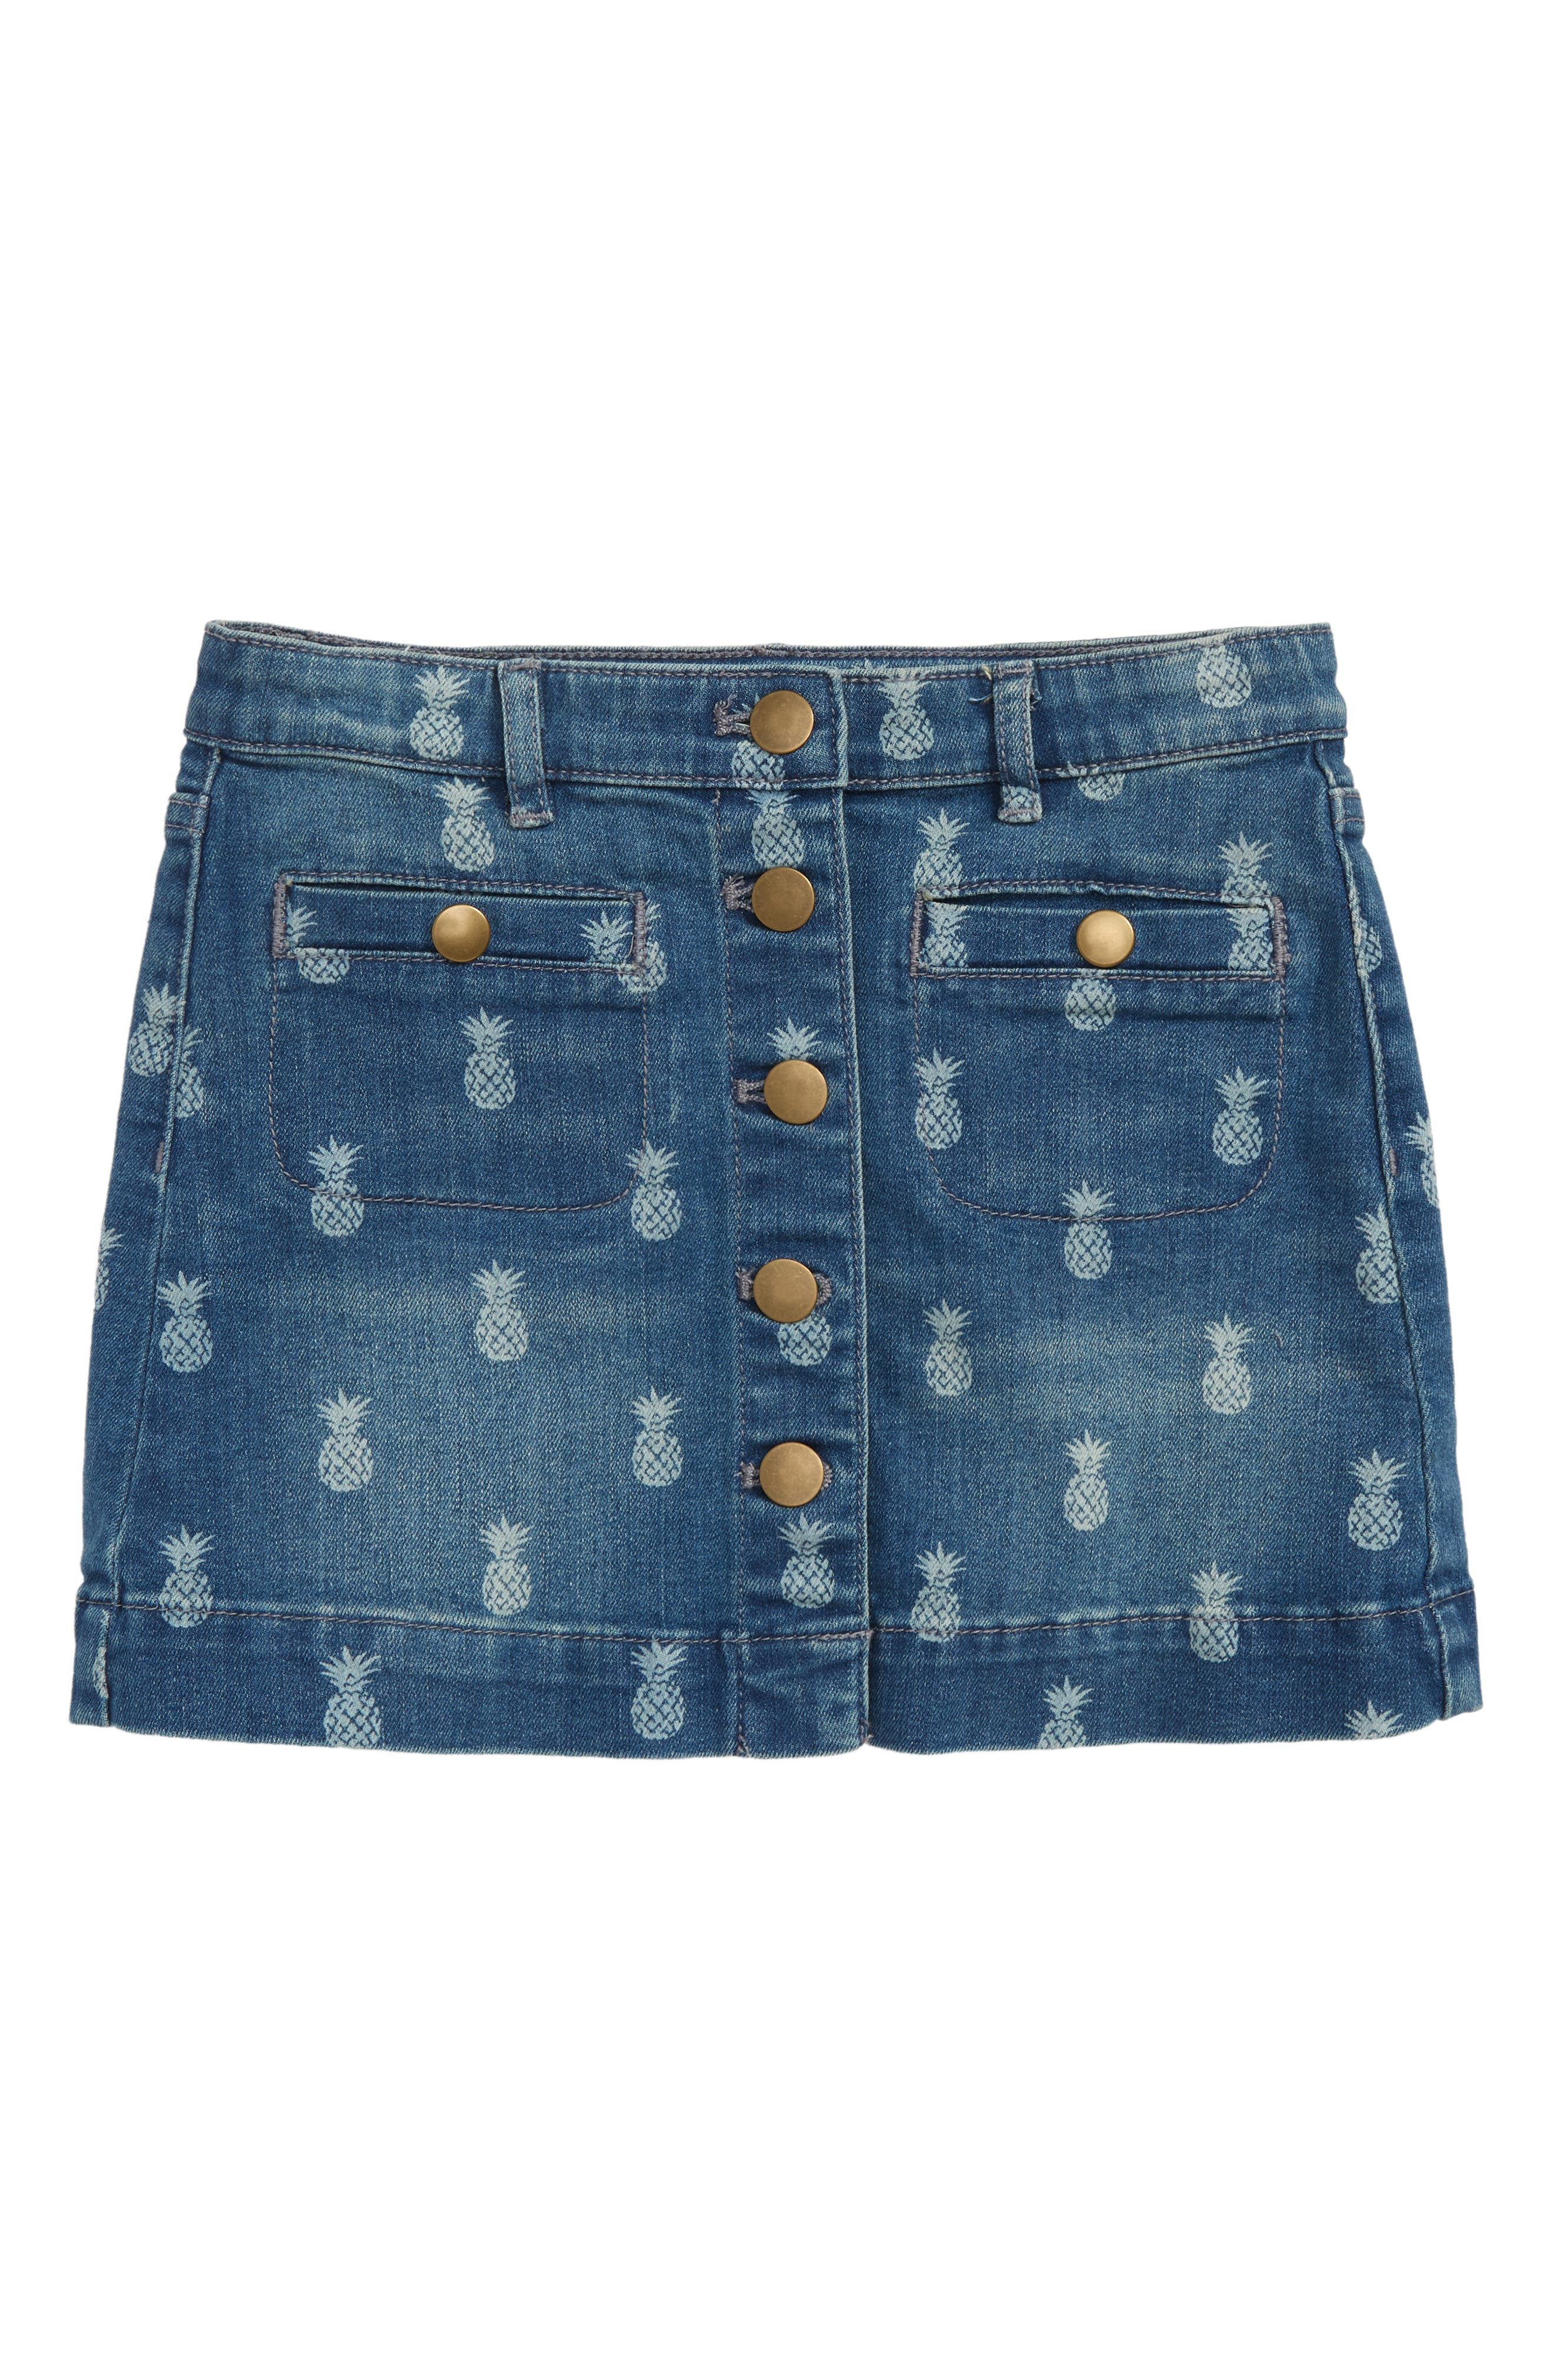 Pineapple Print Denim Skirt,                         Main,                         color, 400